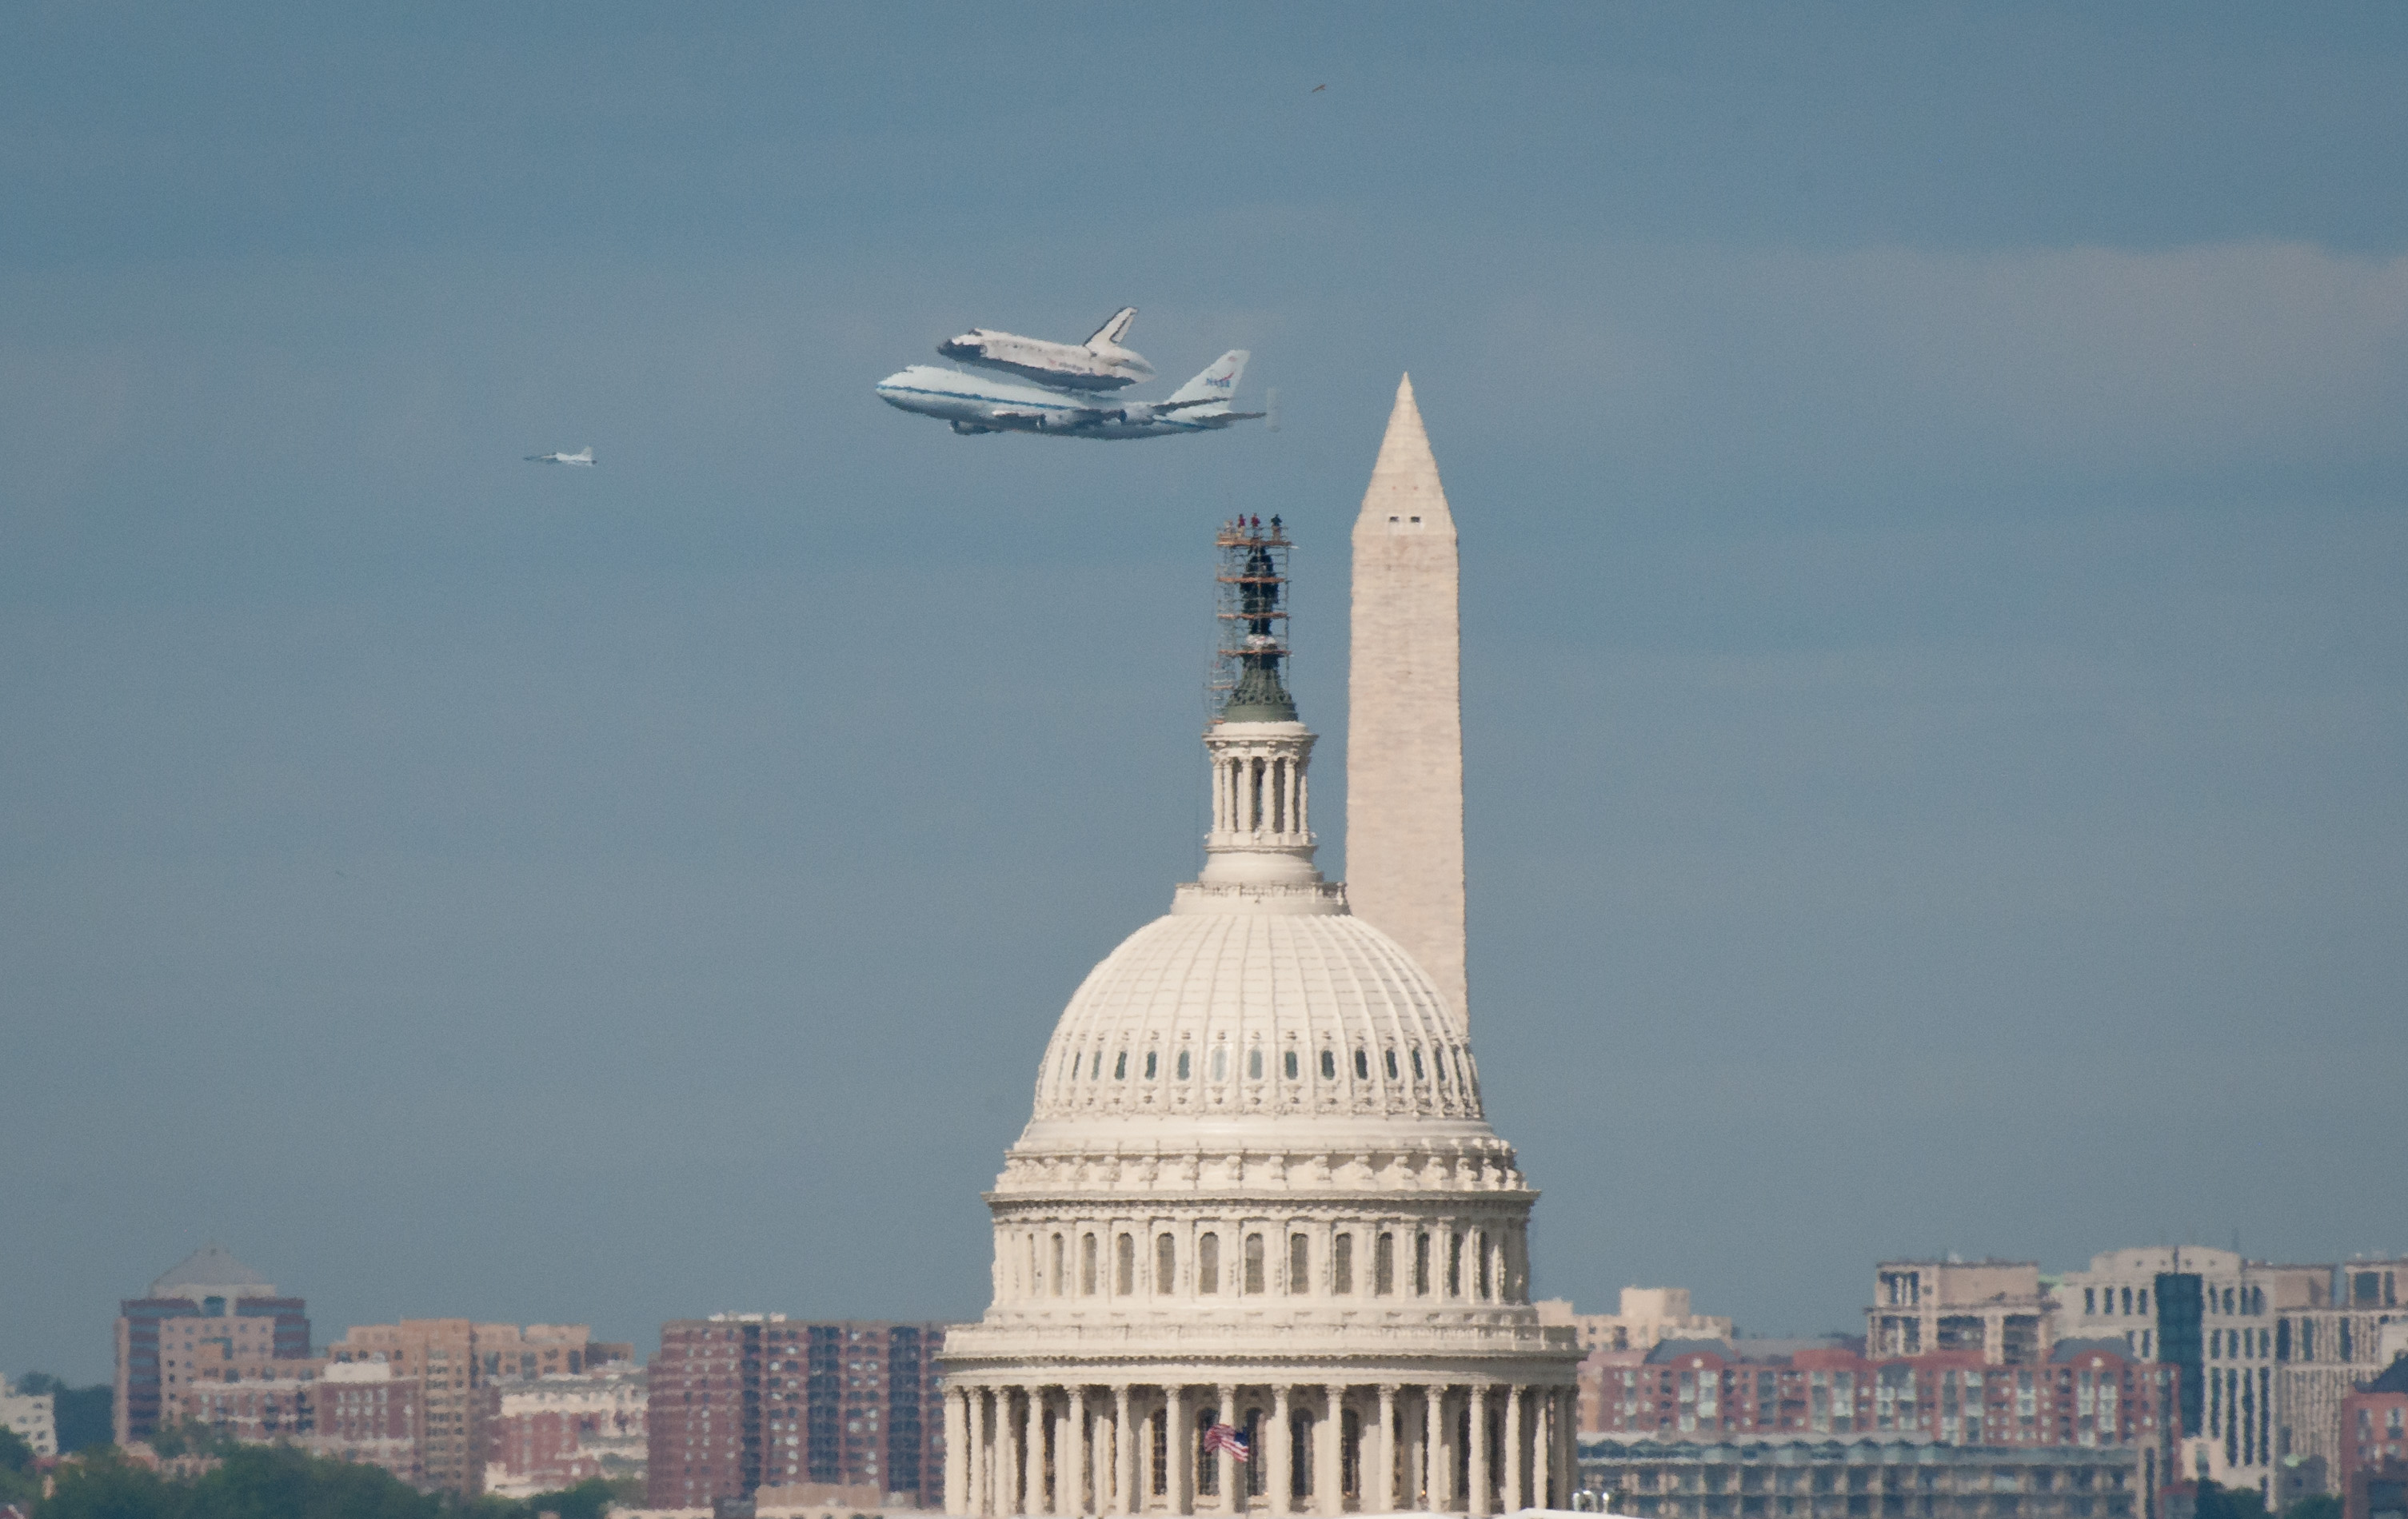 Space Shuttle Discovery over Washington, DC